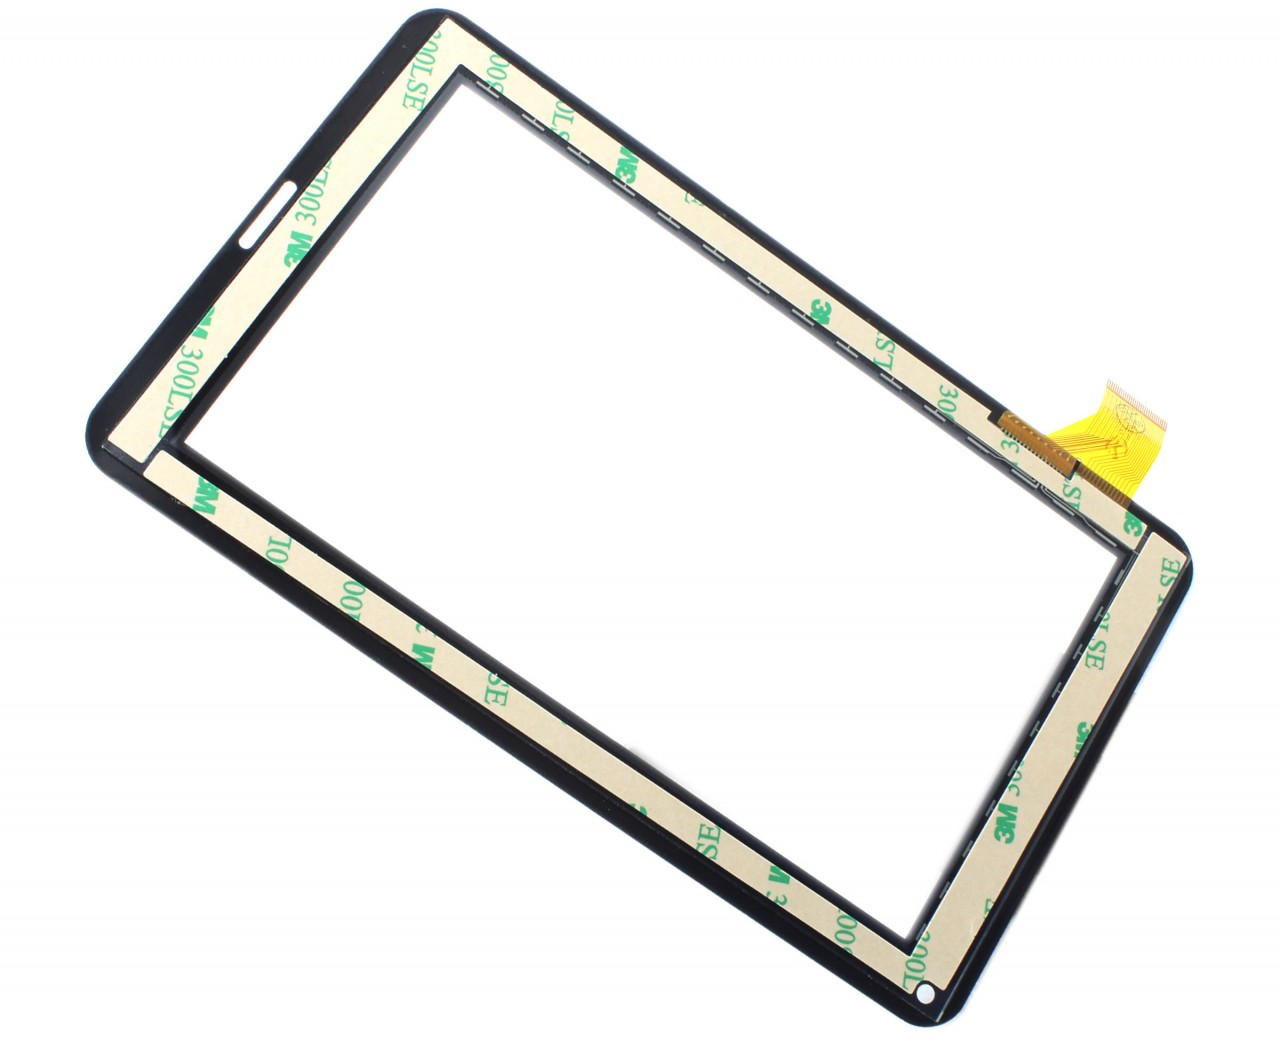 Touchscreen Digitizer eBoda Essential A310 Geam Sticla Tableta imagine powerlaptop.ro 2021